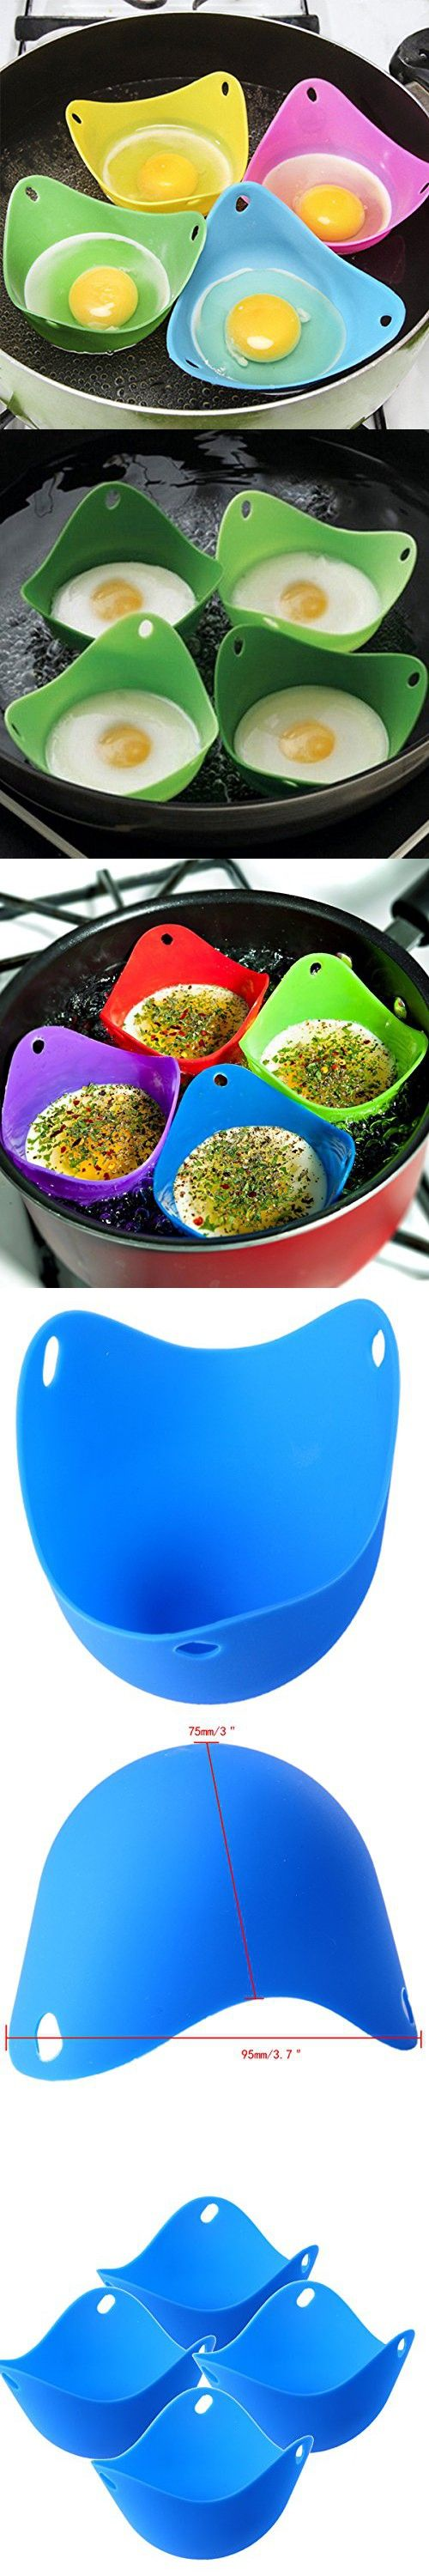 WHOSEE 4Pcs Silicone Egg Poacher Sandwich Baking Cup DIY Kitchen Cookware Blue